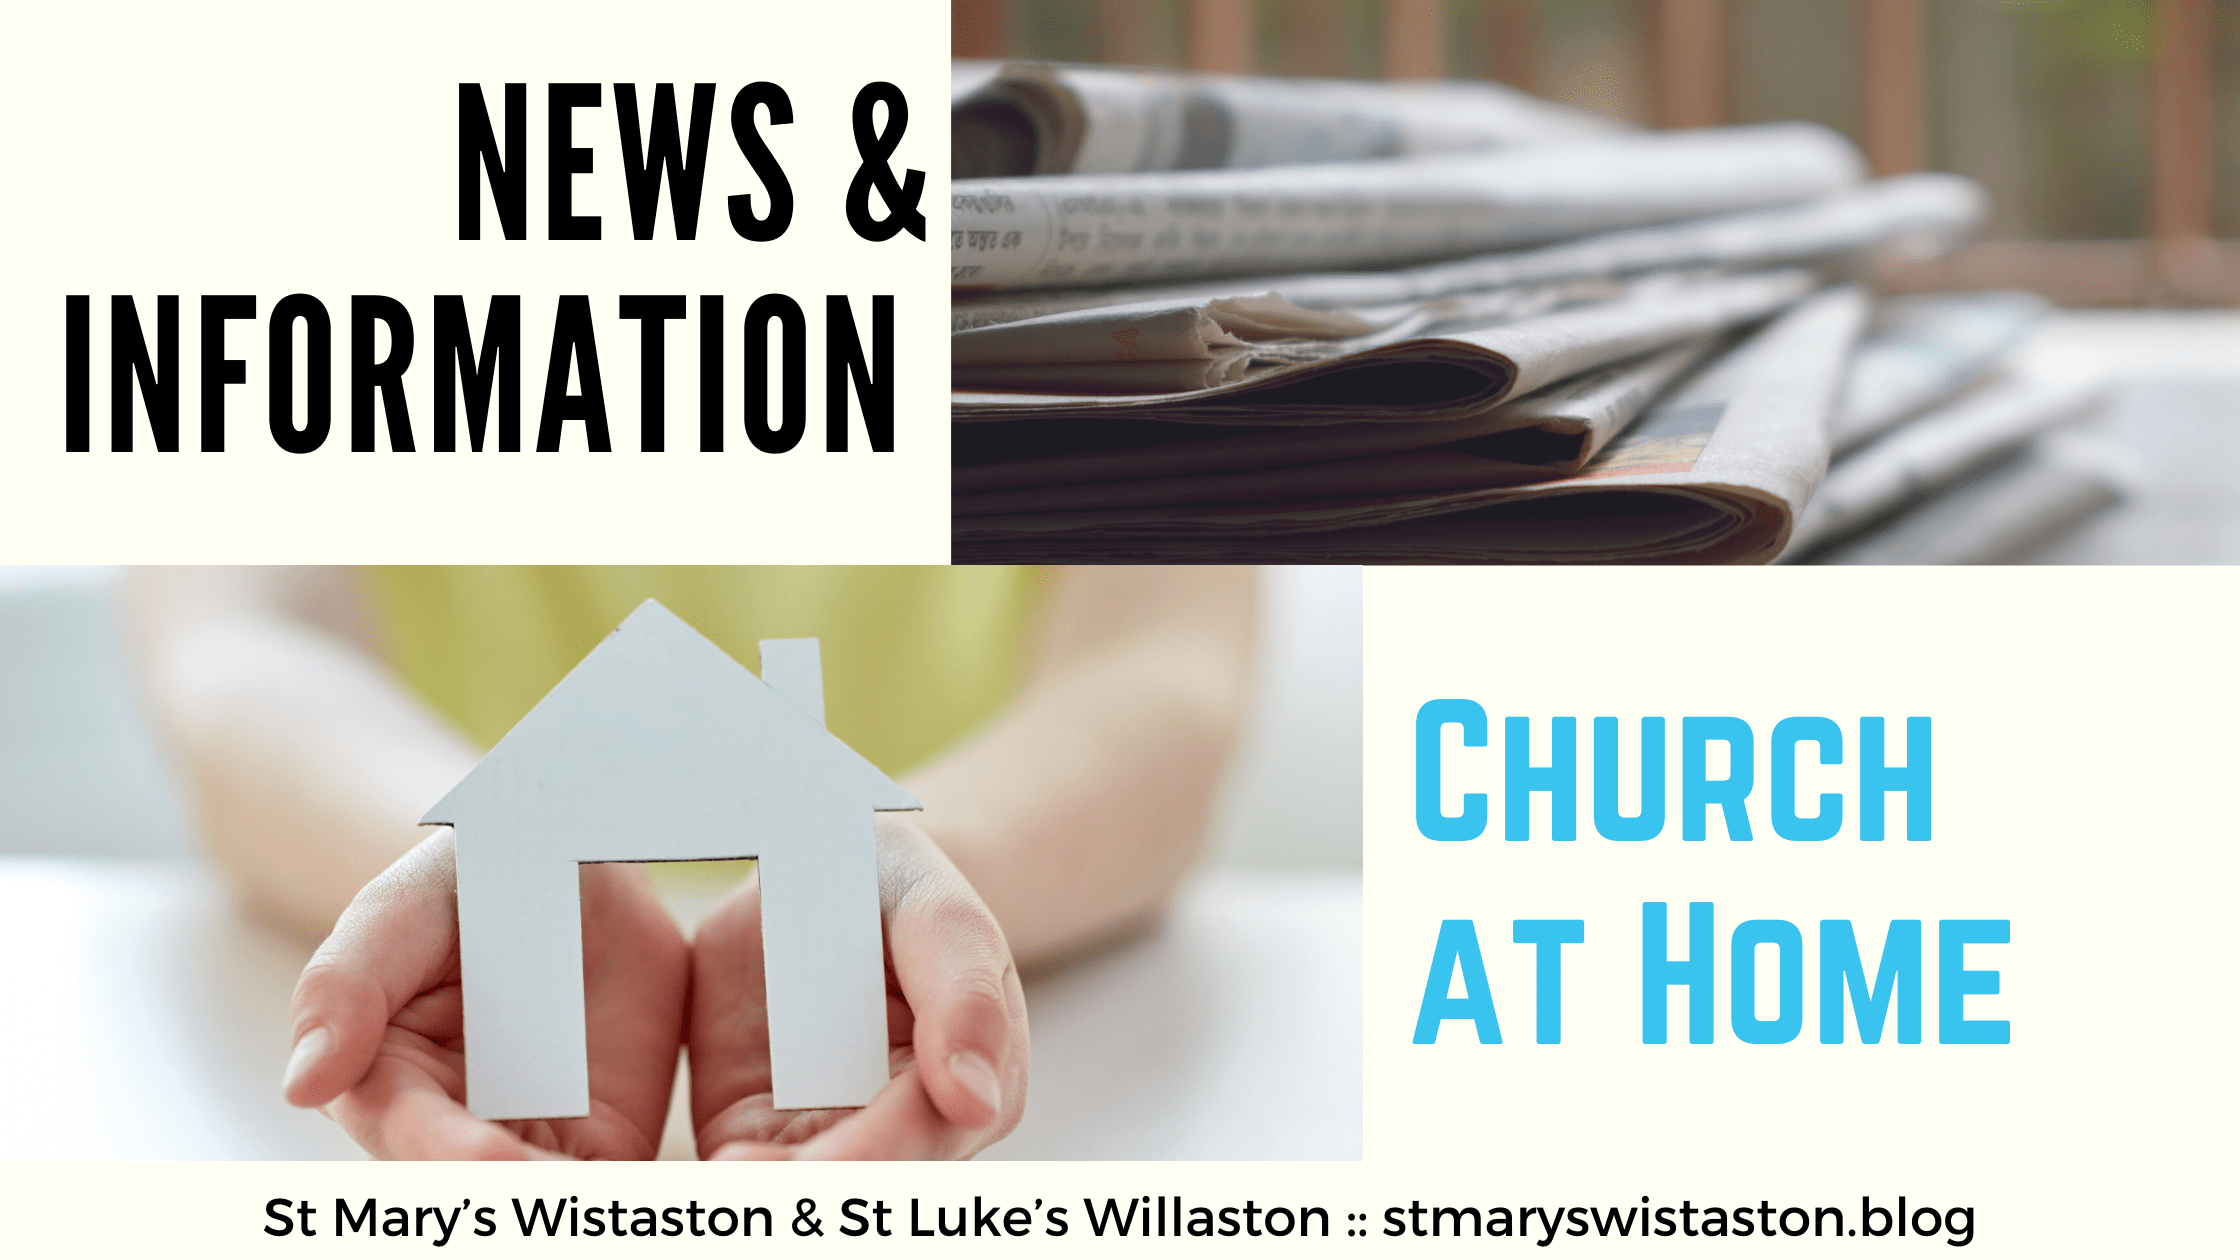 News & Church at Home